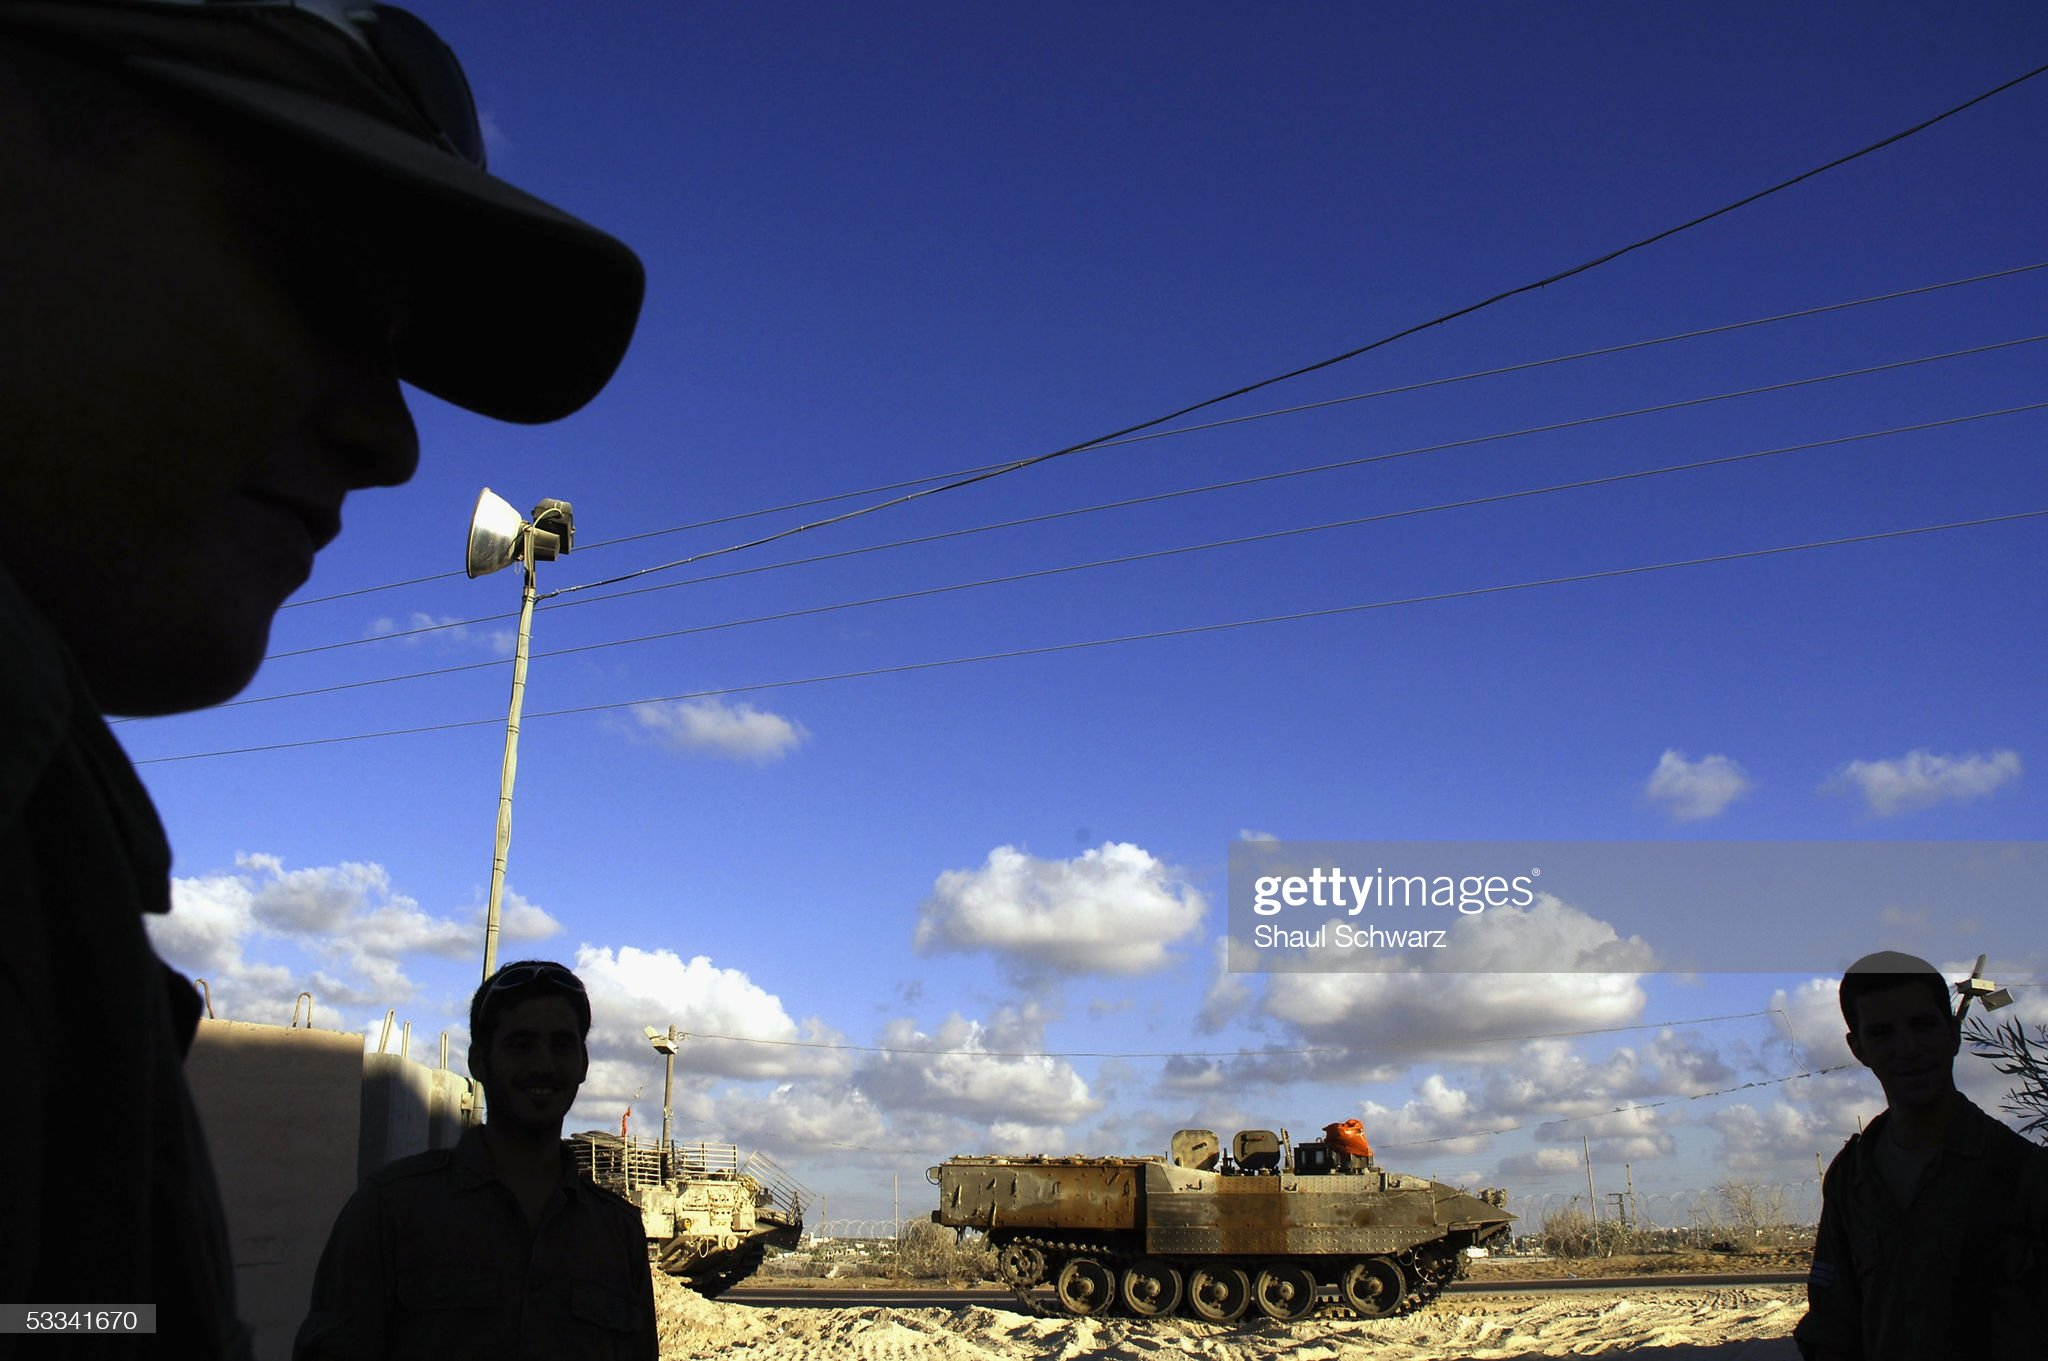 https://media.gettyimages.com/photos/israeli-defense-force-soldiers-stand-near-tanks-august-8-2005-at-picture-id53341670?s=2048x2048